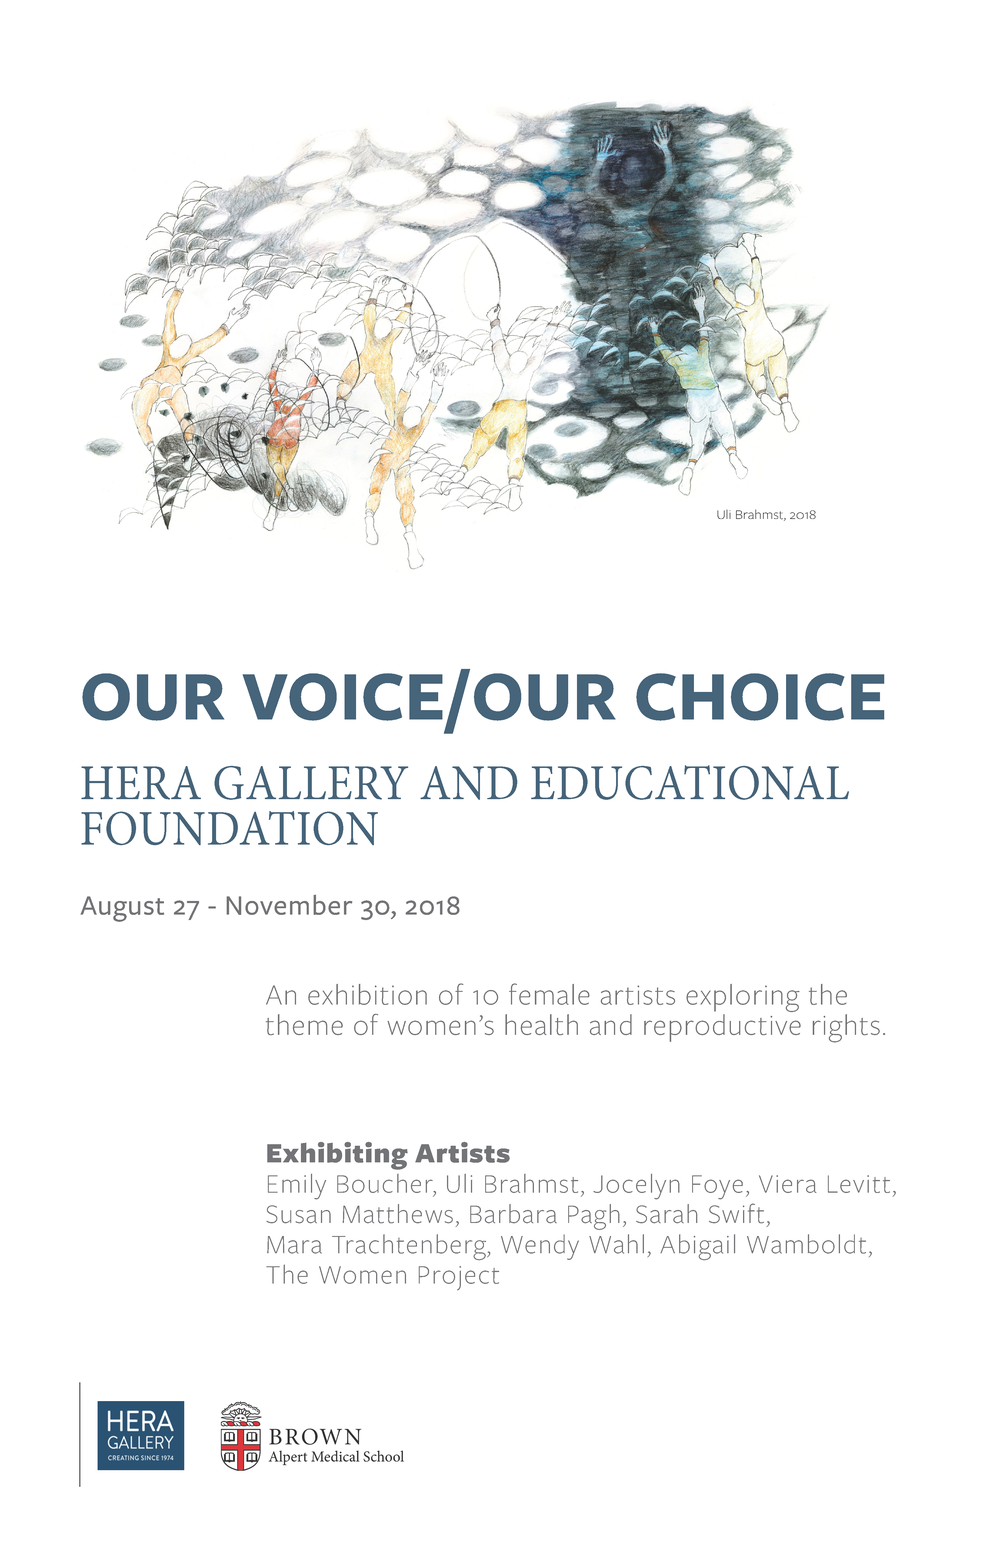 • Our Voice / Our Choice •  Hera Gallery presents the exhibition of 10 female artists exploring the theme of women's health and reproductive rights. This show will be on view Now, until the end of November at The Warren Alpert Brown Medical School at Brown University. • Opening Reception and Artist Talk: Thursday, October 4th. • Exhibiting Artists: Emily Boucher, Uli Brahmst, Jocelyn Foye, Viera Levitt, Susan Matthews, Barbara Pagh, Sarah Swift, Mara Trachtenberg, Wendy Wahl, Abigail Wamboldt, and The Woman Project. • Women around the world continue to struggle for autonomy over their bodies, for universal access to the medical treatment of their choice, and for the right to make decisions for themselves, their families, and their community. We raise our voices against these attempts to deny women their fundamental rights, and call for freedom regarding our bodies and ourselves. This exhibition brings together women who are Boomers, Gen Xers, and Millennials. The artists' responses to the theme are informed by their personal experiences and practices. Our intention is to represent visually some of the many factors that contribute to the complex issues of woman's health and reproductive rights. They include topics such as gender and sexuality; the small daily oppressions that impact self-worth; women's physical and emotional security; the sustaining power of love and trust; and the strength of sisterhood. • Hera Gallery is part of a statewide movement to generate visibility and action concerning the intersection of art and health. Hera understands the positive impact art can have on both maker and viewer, how the engagement in the creative process can broaden horizons, shift perspectives, enrich communication, and cultivate innovative vision